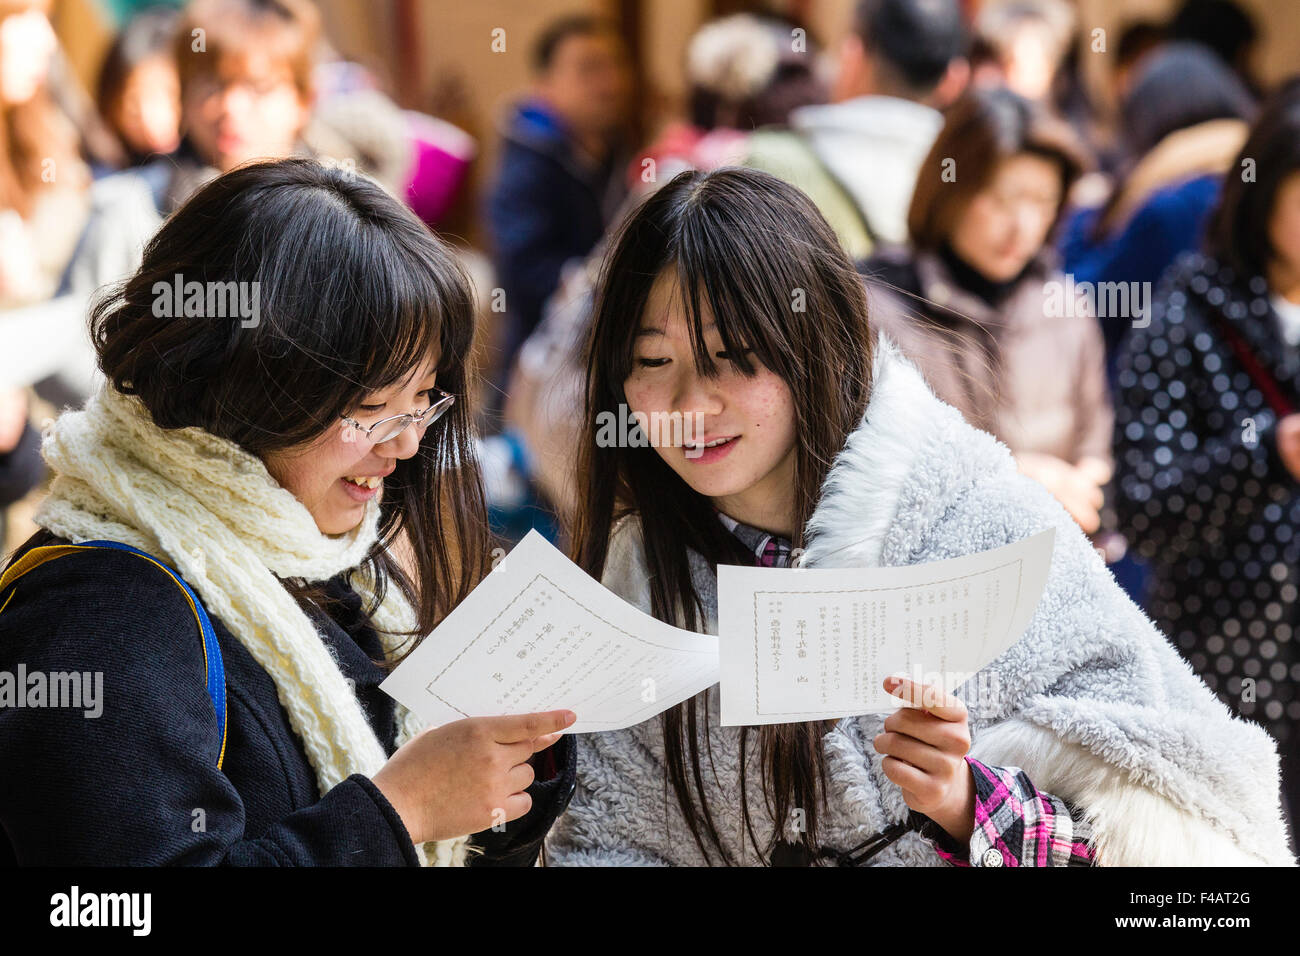 Nishinomiya Shinto shrine. Two young women, both holding omikuji, fortune paper, but both discussing one paper, - Stock Image